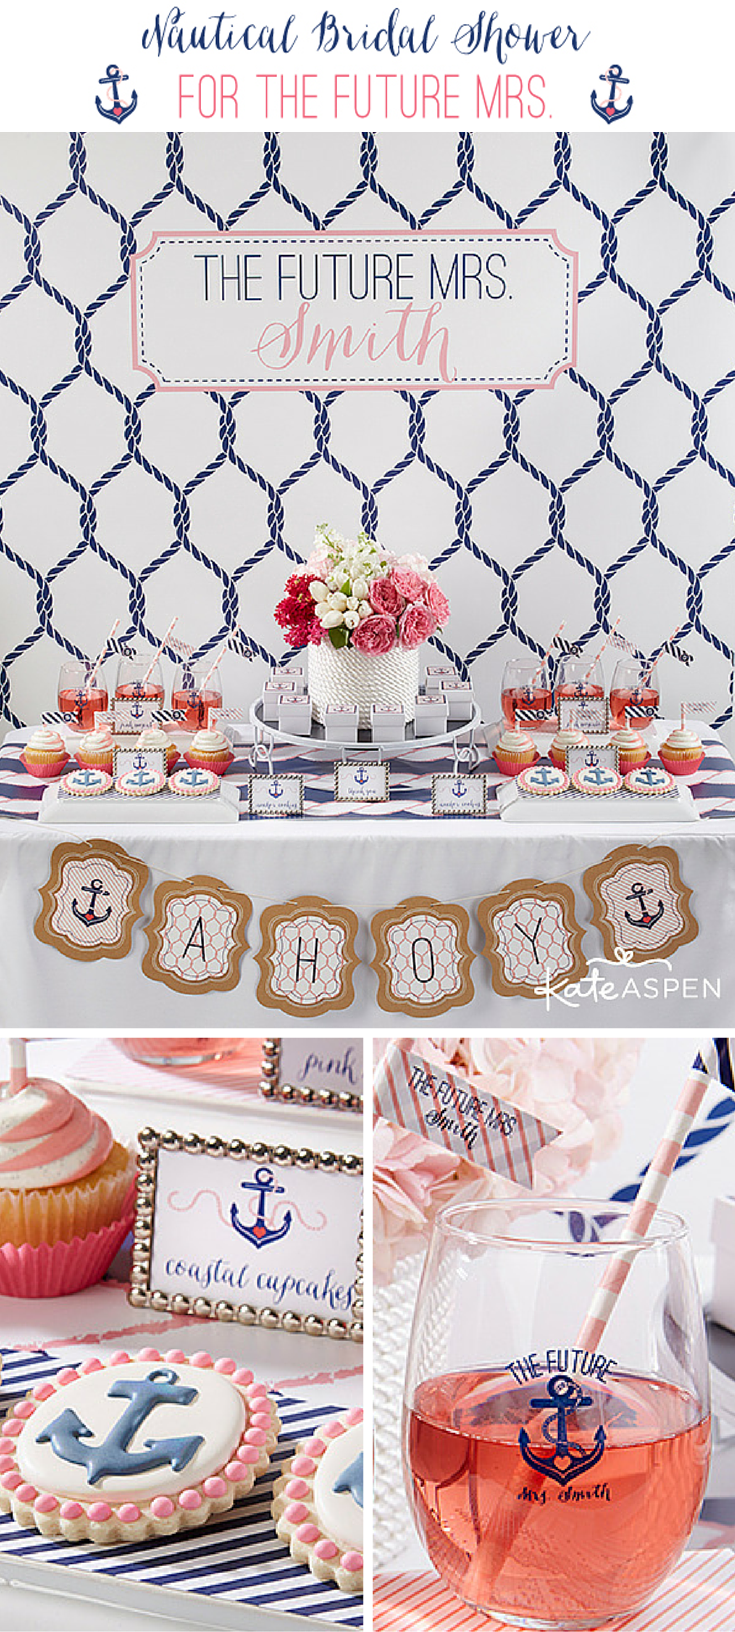 Celebrate The Future Mrs With A Preppy Nautical Themed Bridal Shower